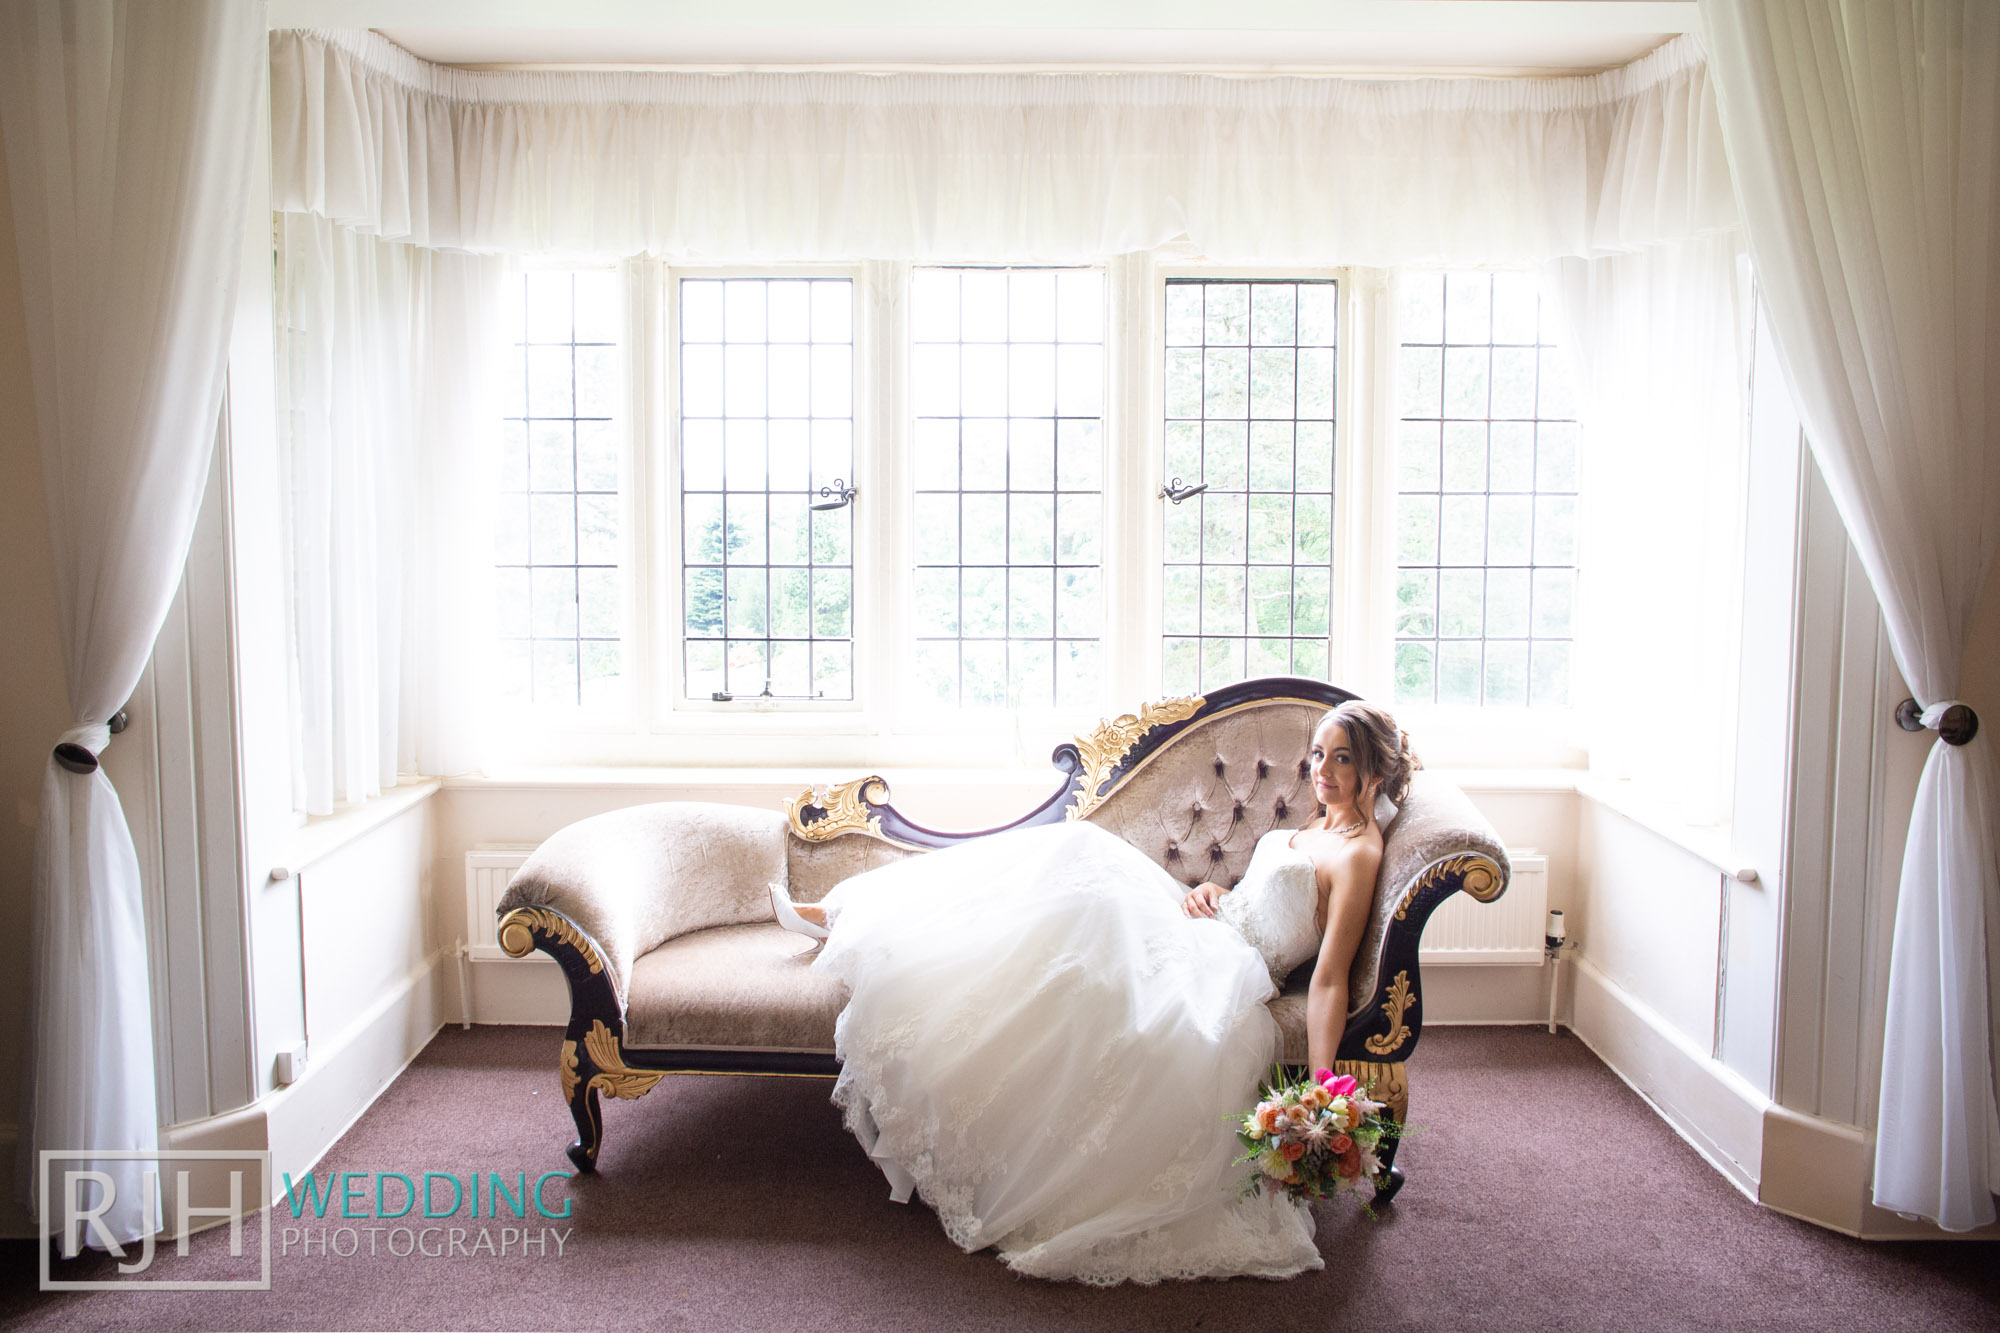 Whirlowbrook Hall Wedding Photography_Jack & Lydia_024_3C2A3134.jpg